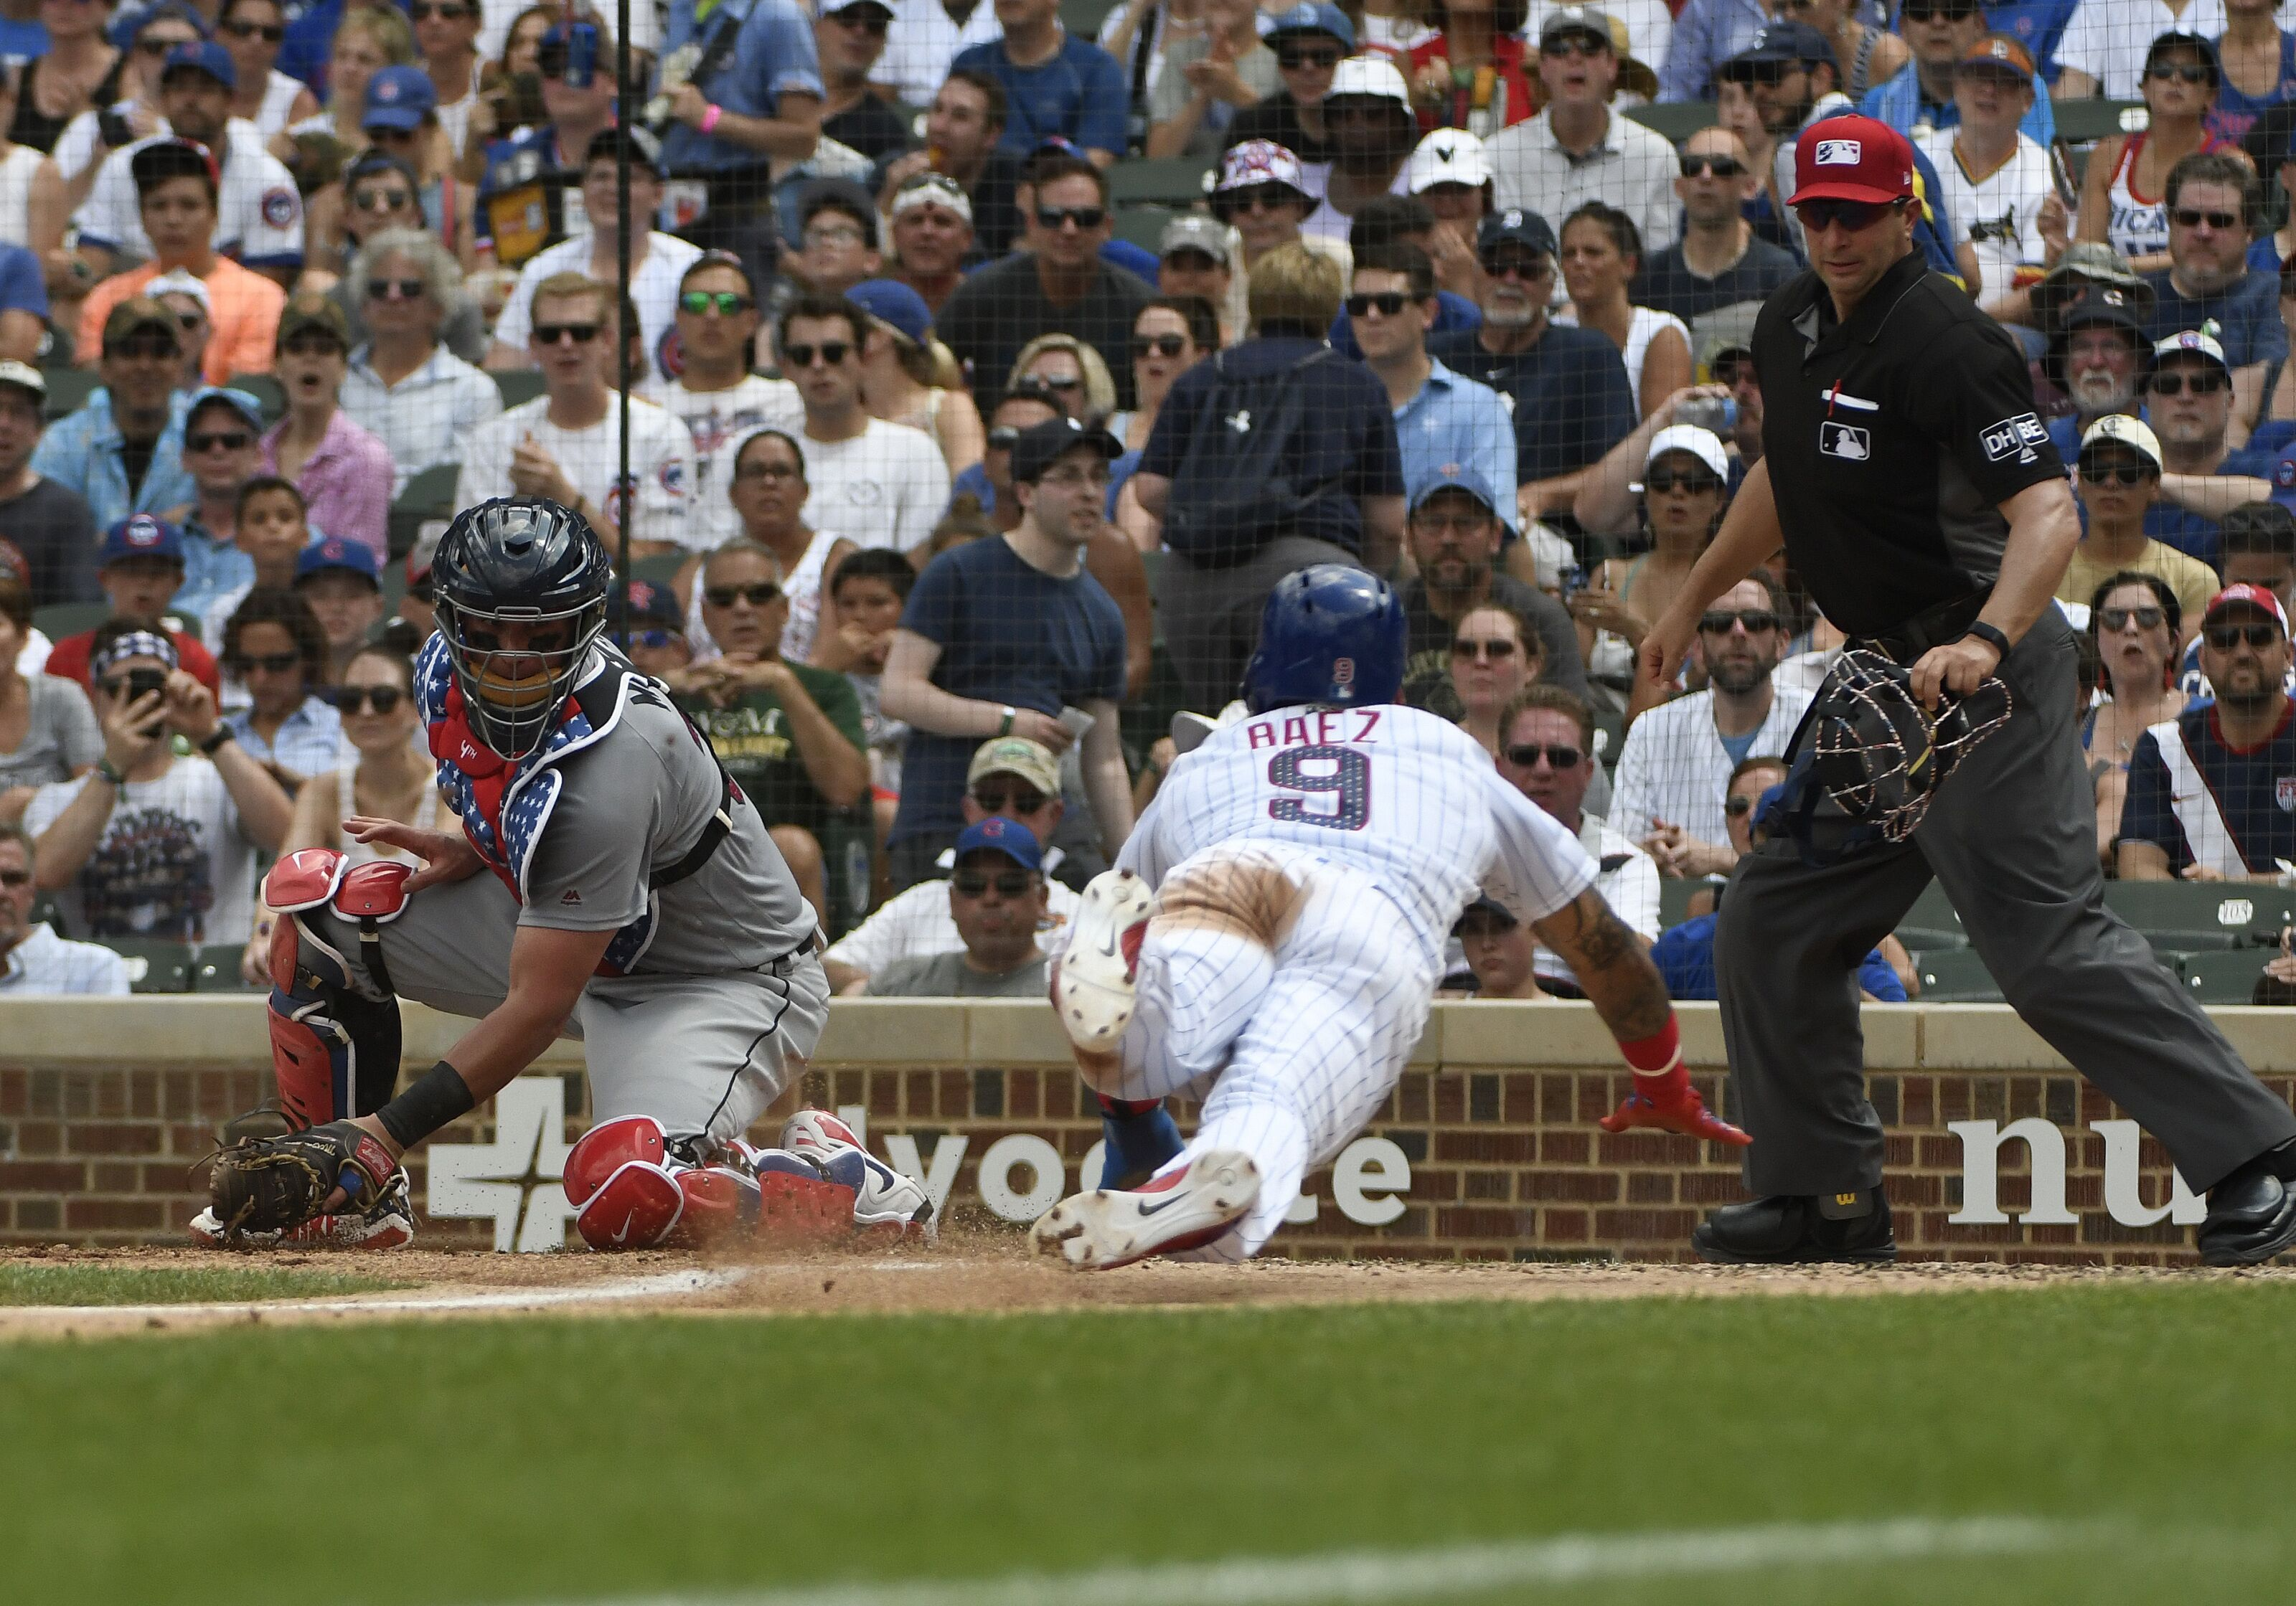 Chicago Cubs: Recalling the best Javier Báez move of 2018